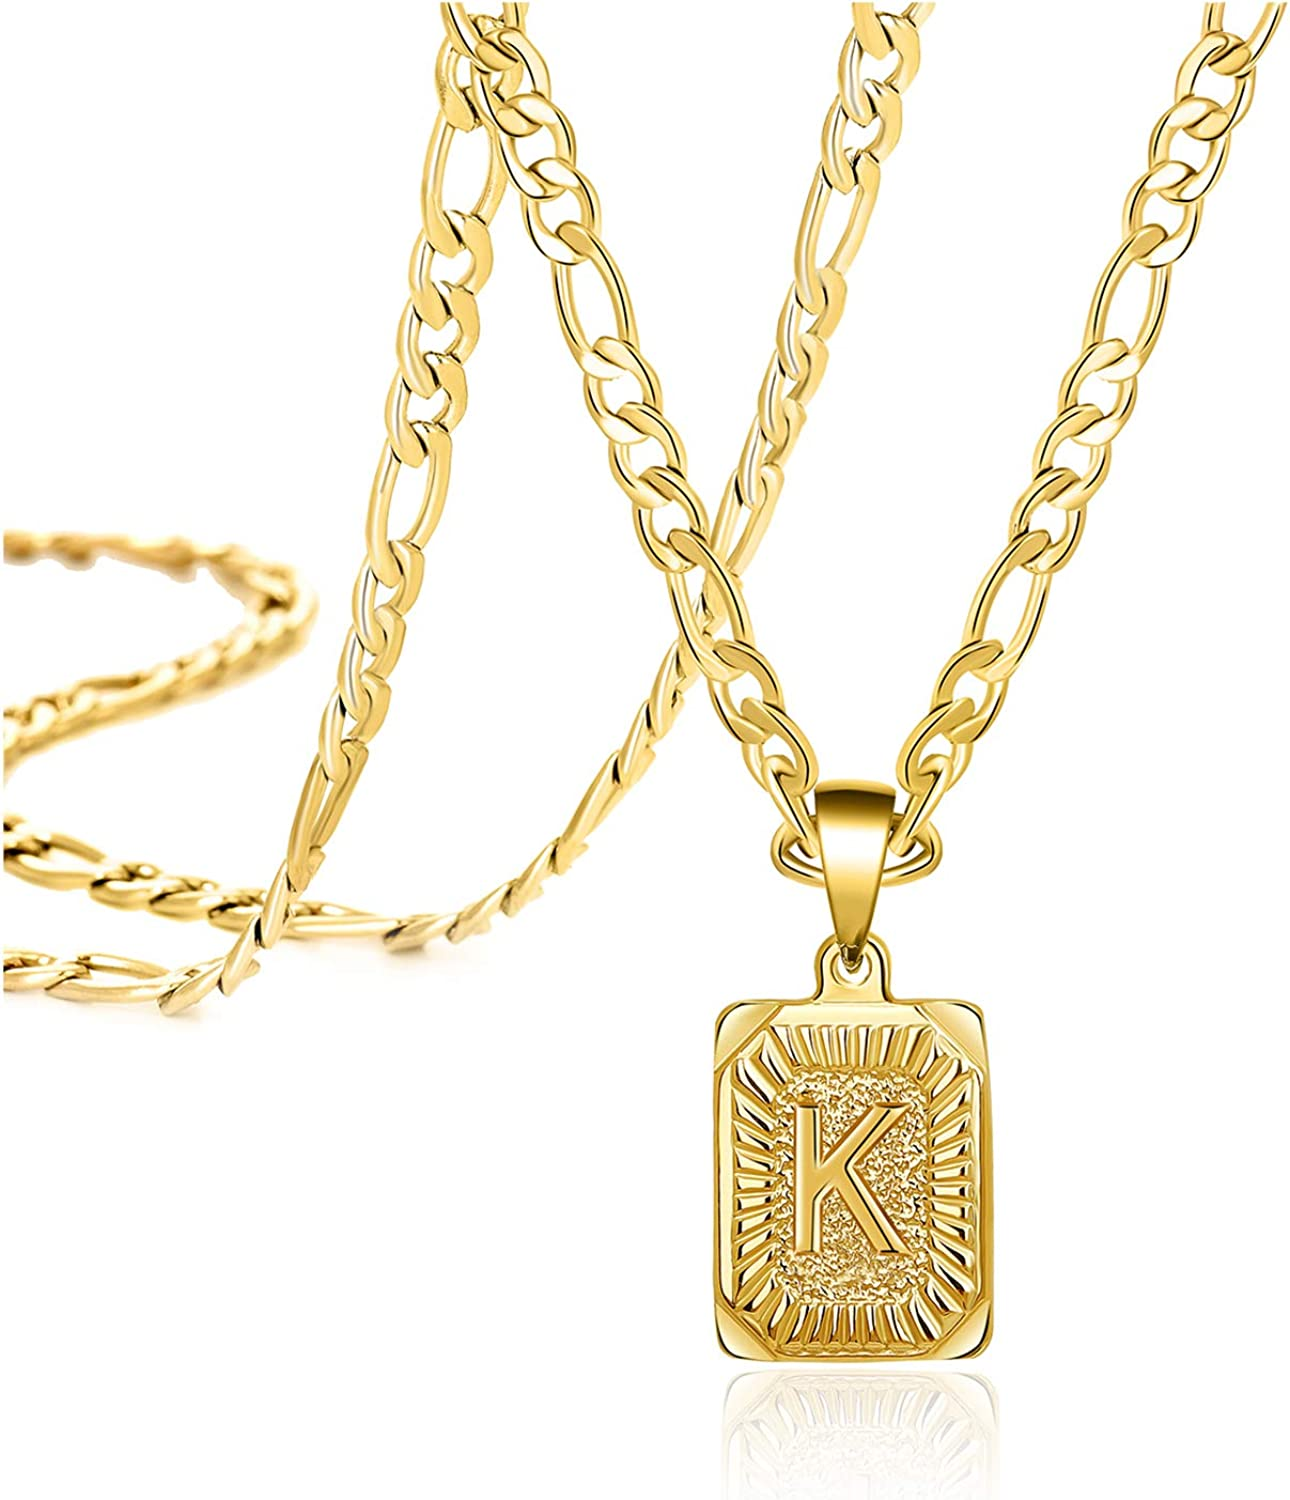 18K Gold Filled Initial Necklaces for Women Men Square Letter Pendant Handmade 26 Alphabets from A-Z Simple Unique Stainless Steel Jewelry